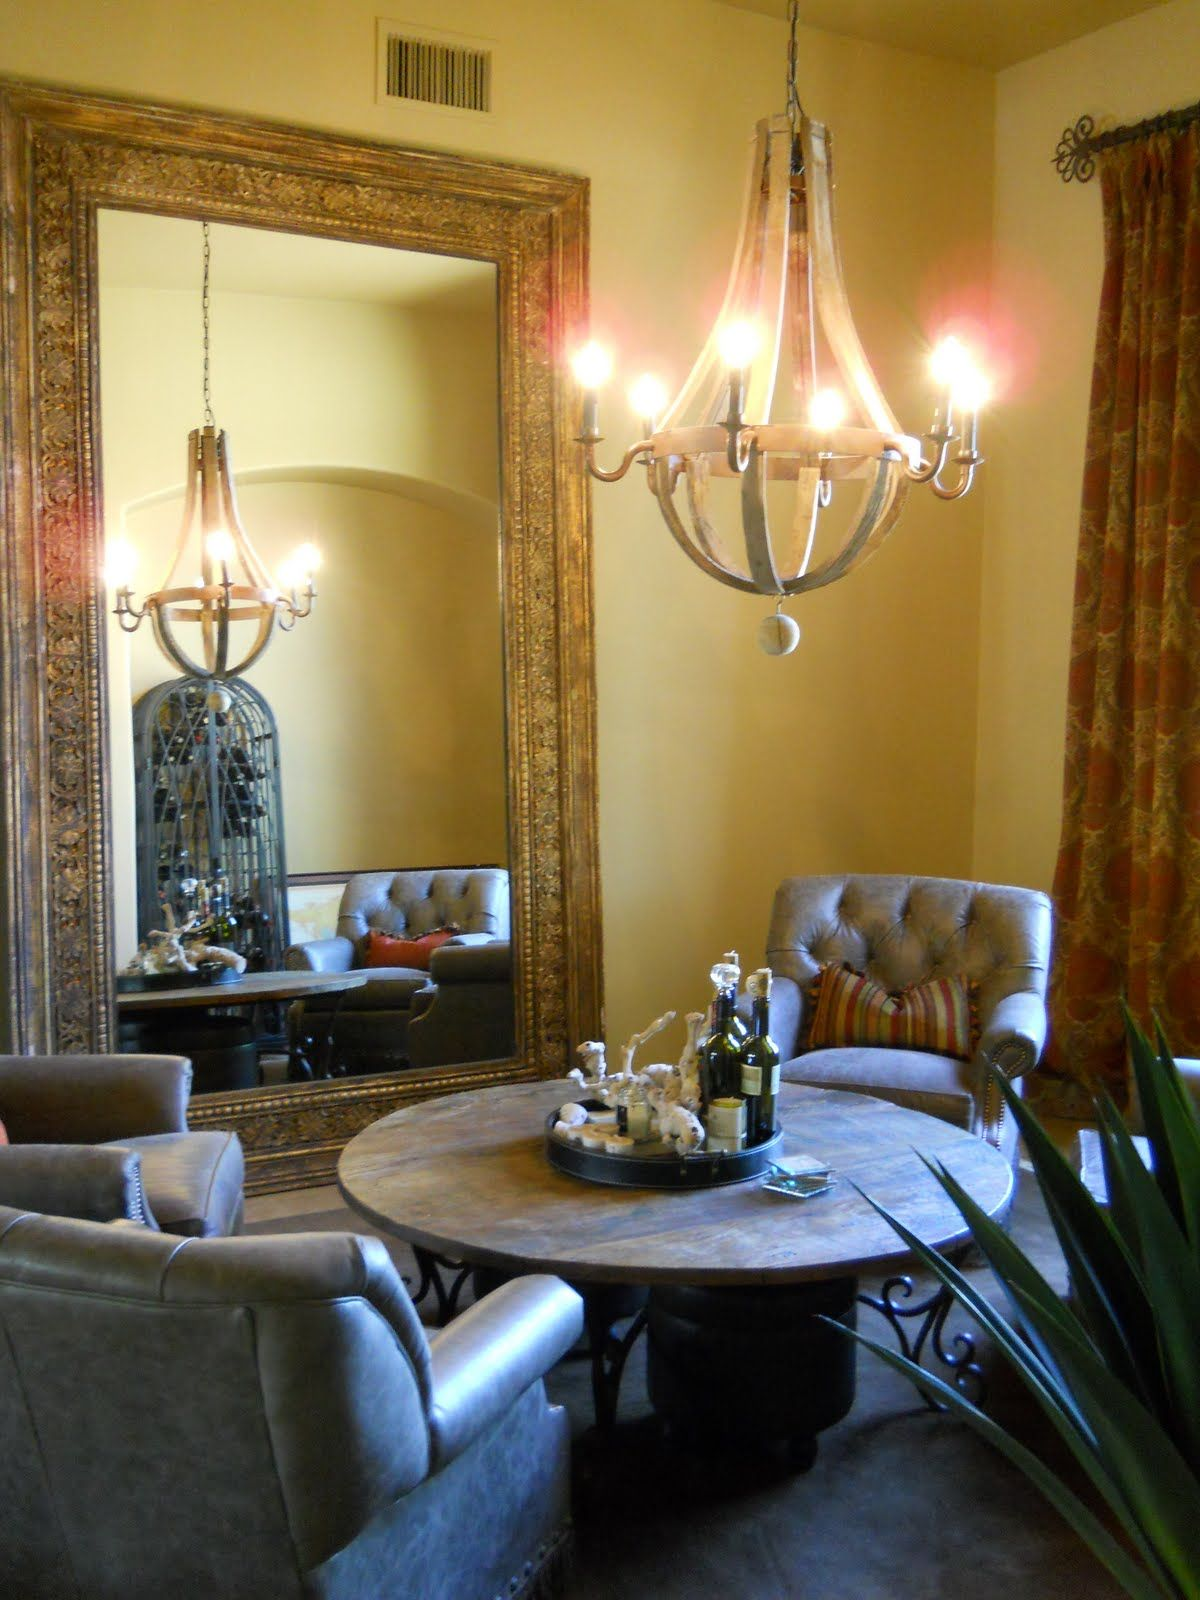 A Formal Dining Room Turned Into Wine Lounge Also Great Idea For Living That Is Rarely Used I Love It WANT Mirror